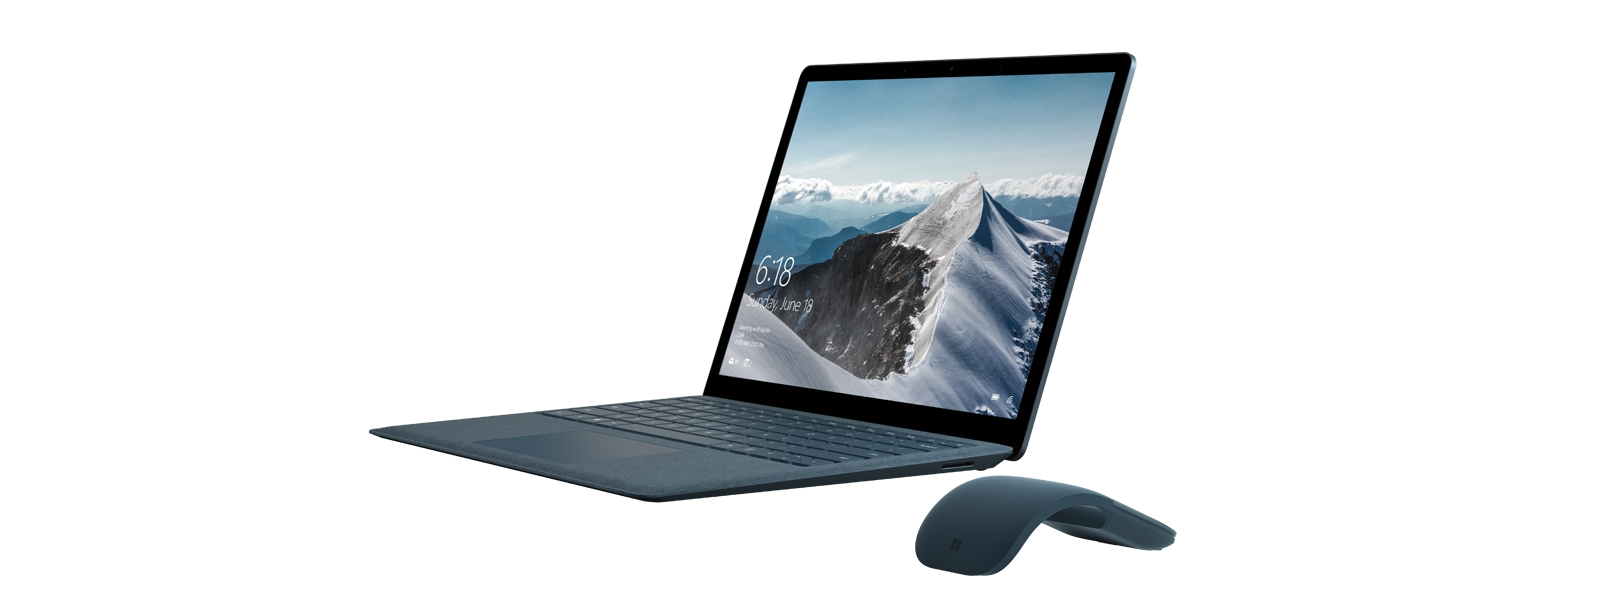 Cobalt Blue Surface Laptop at an angle, with a snowy mountain background on the screen and a Cobalt Blue Arc Touch Mouse next to it.